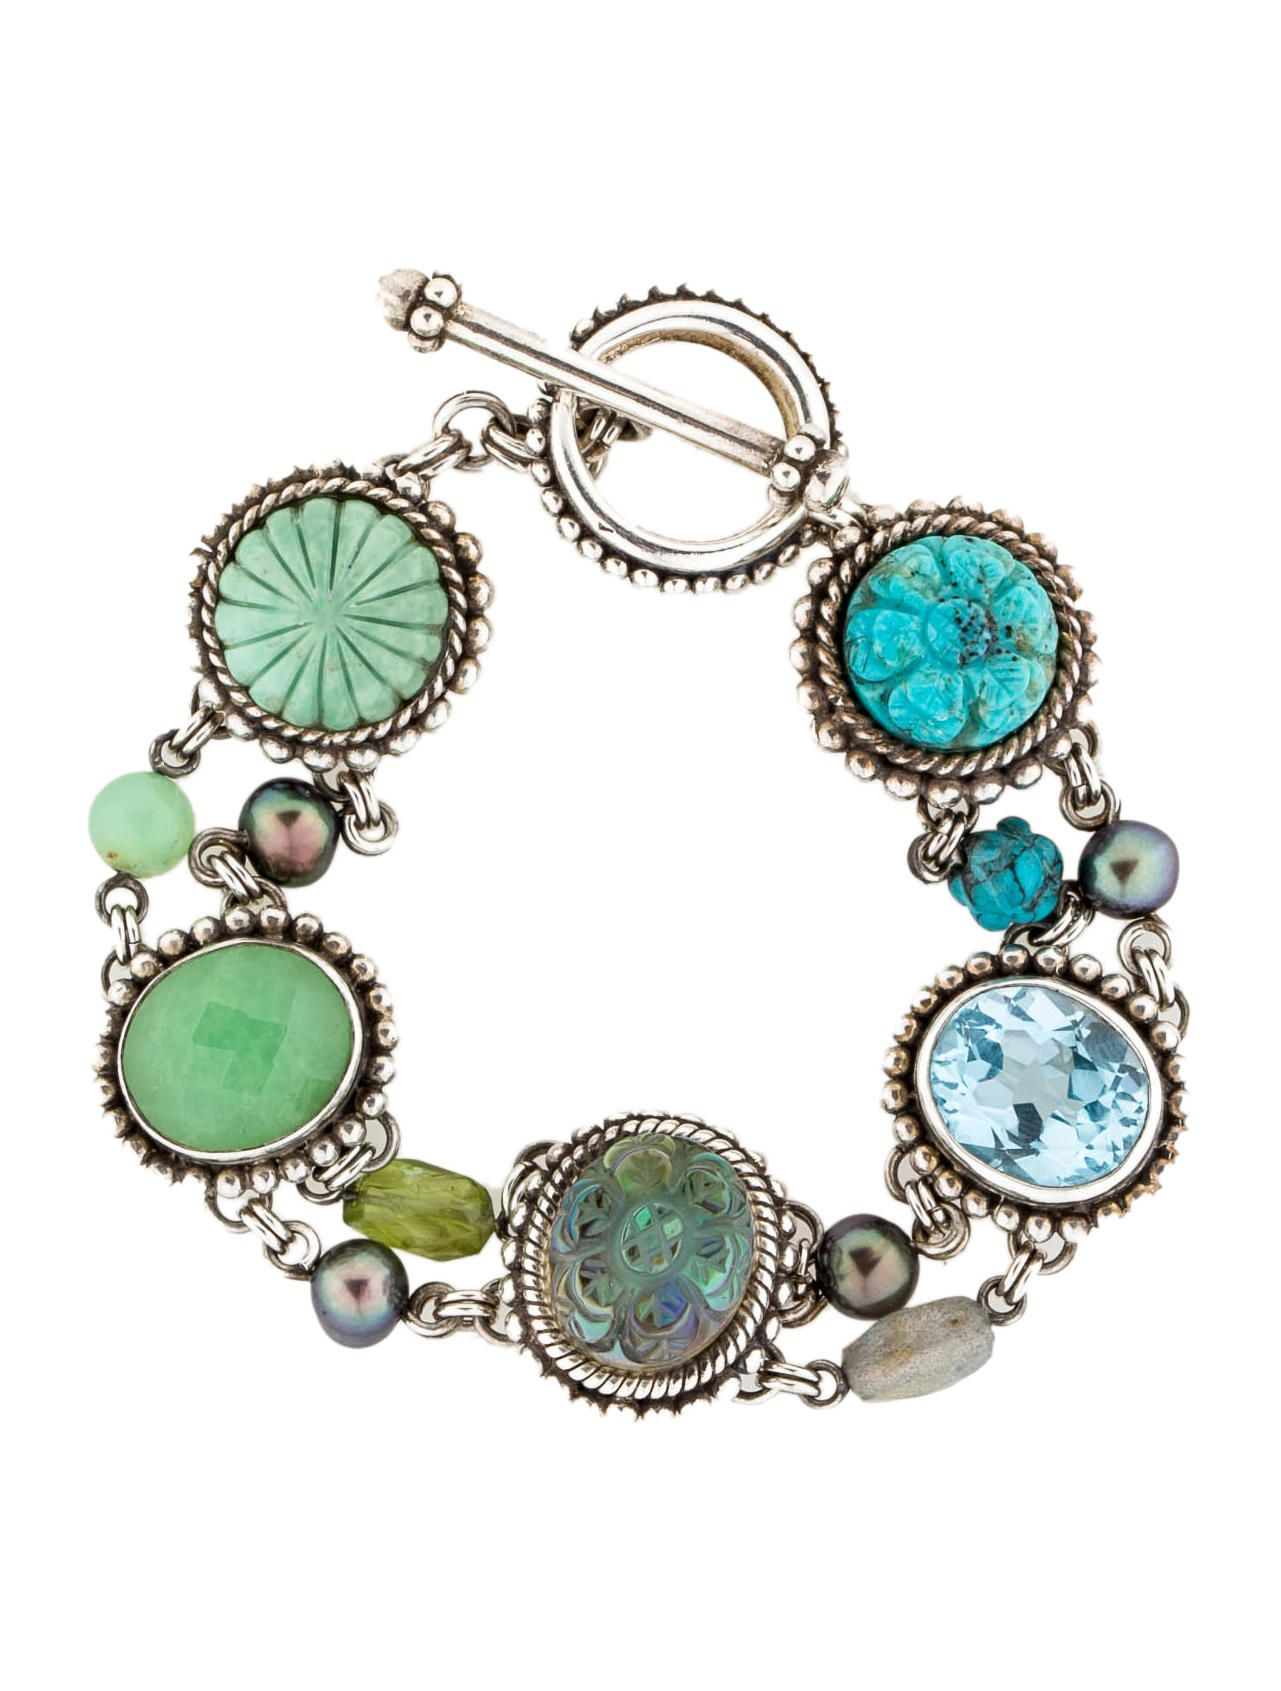 Sterling Silver Stephen Dweck carved stone bracelet with blue topaz, turquoise green chrysoprase and black mother of pearl doublet accents and textured toggle closure. $275.00